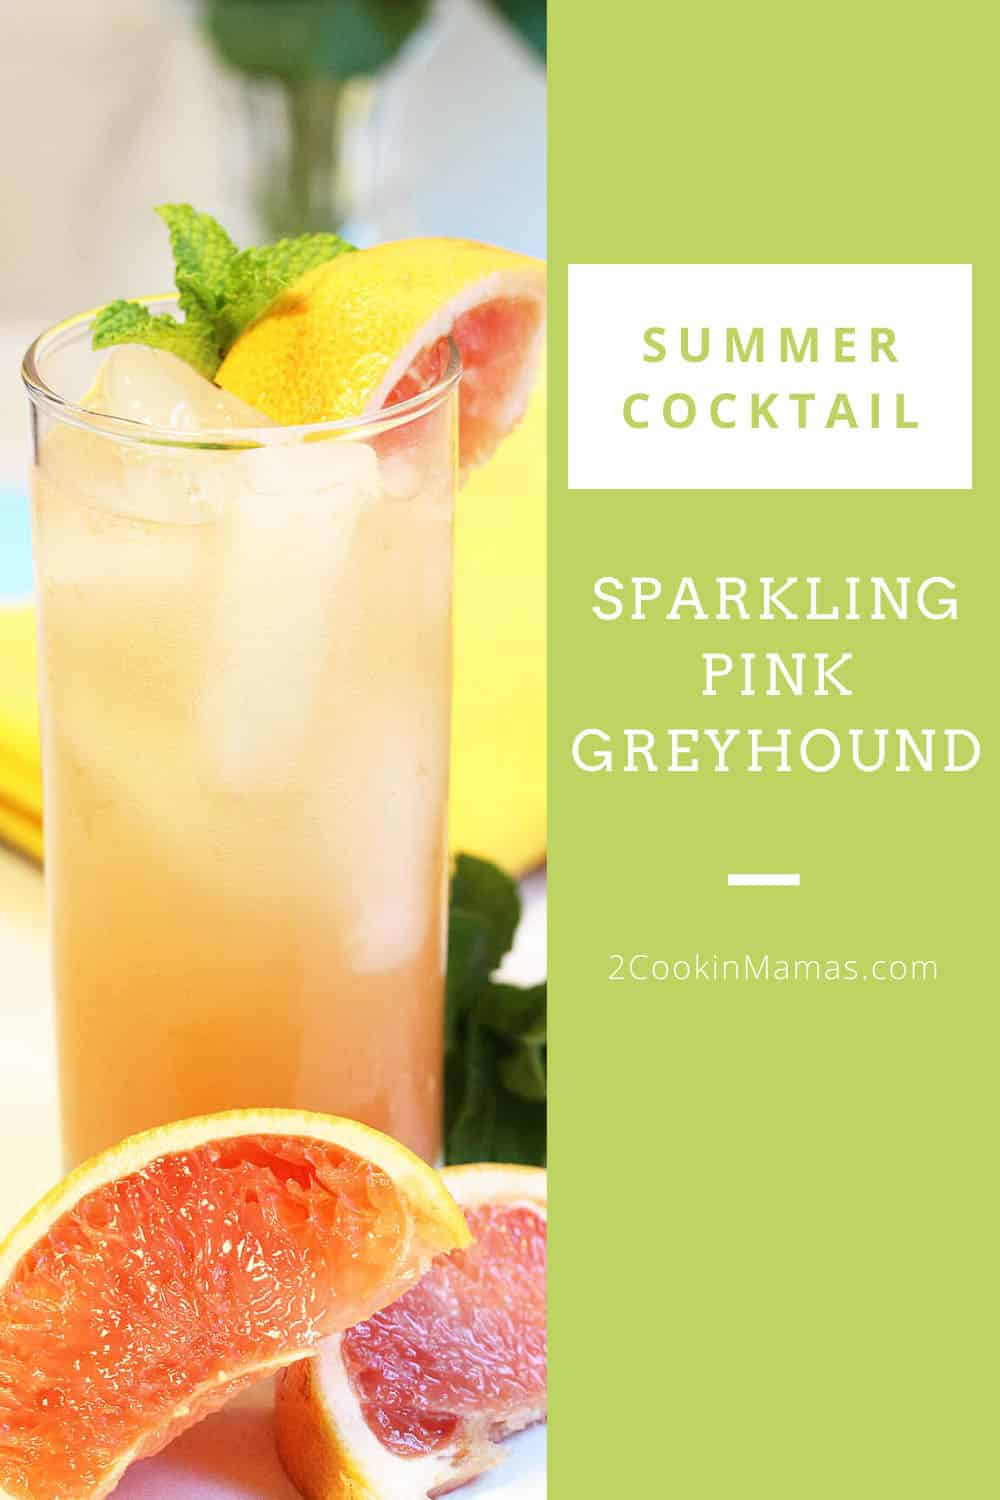 Sparkling Pink Greyhound Cocktail